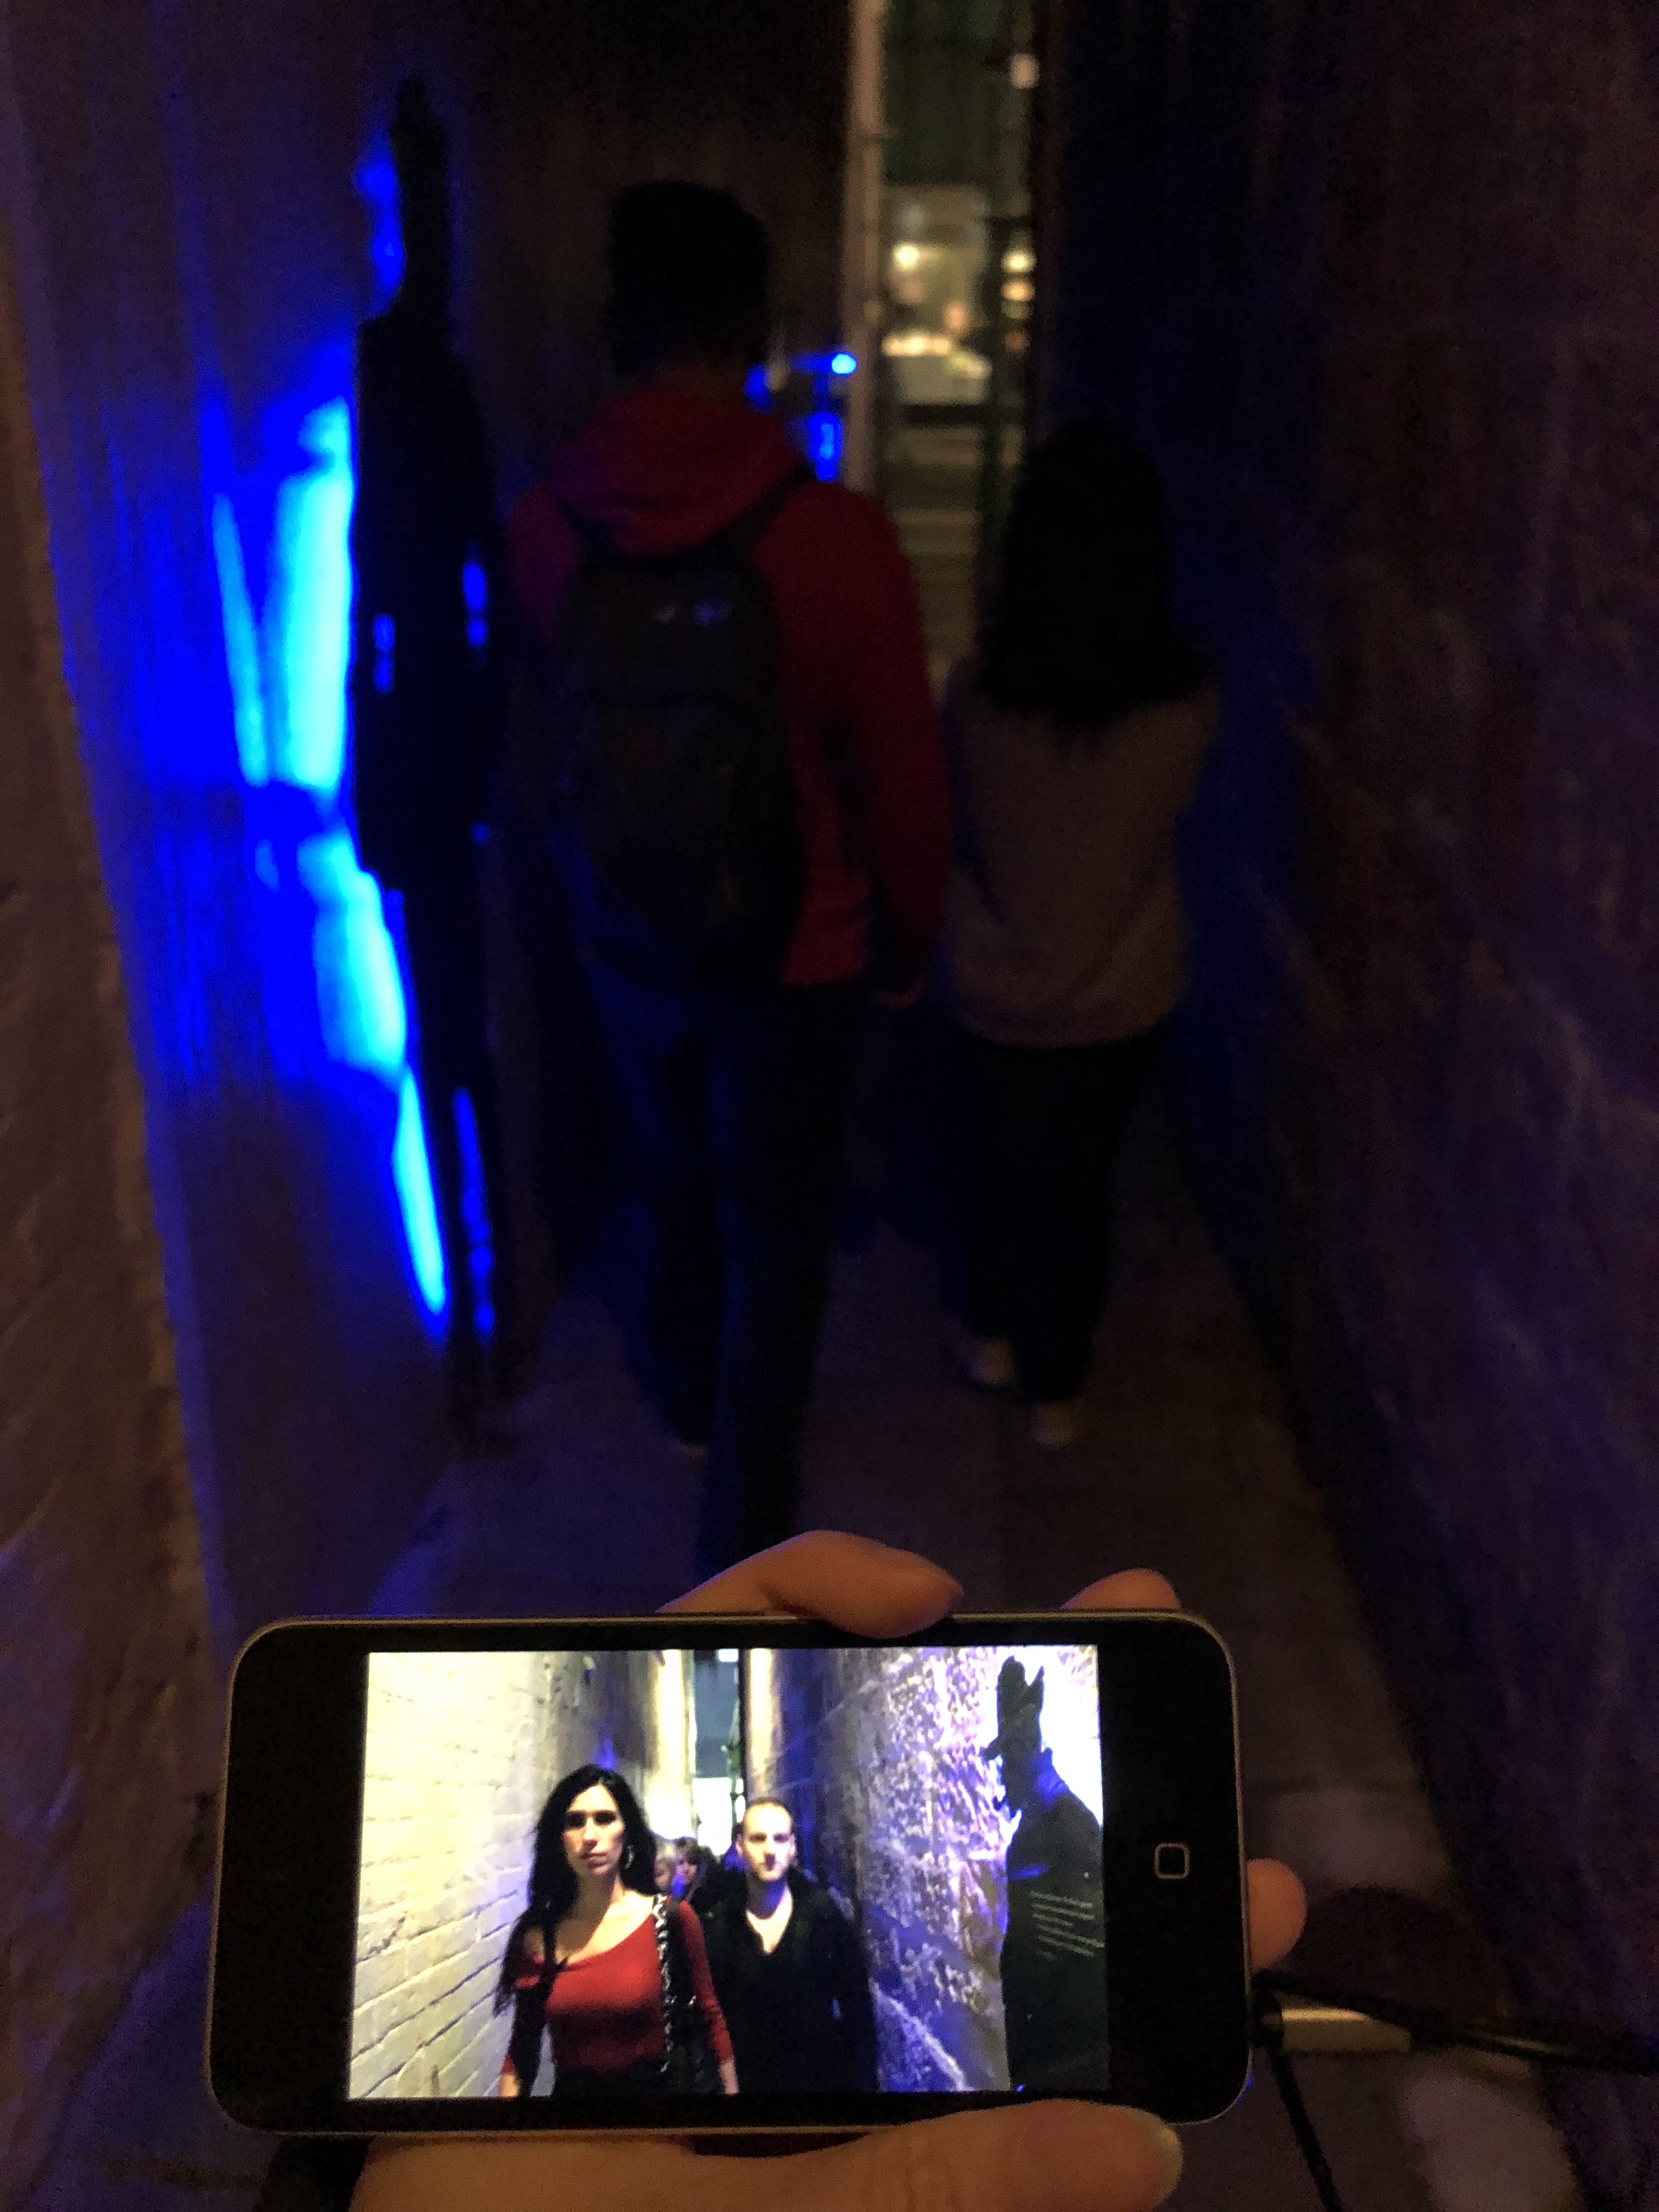 Alleyway shows people walking coldly in isolation in modern world in the video against the background of history